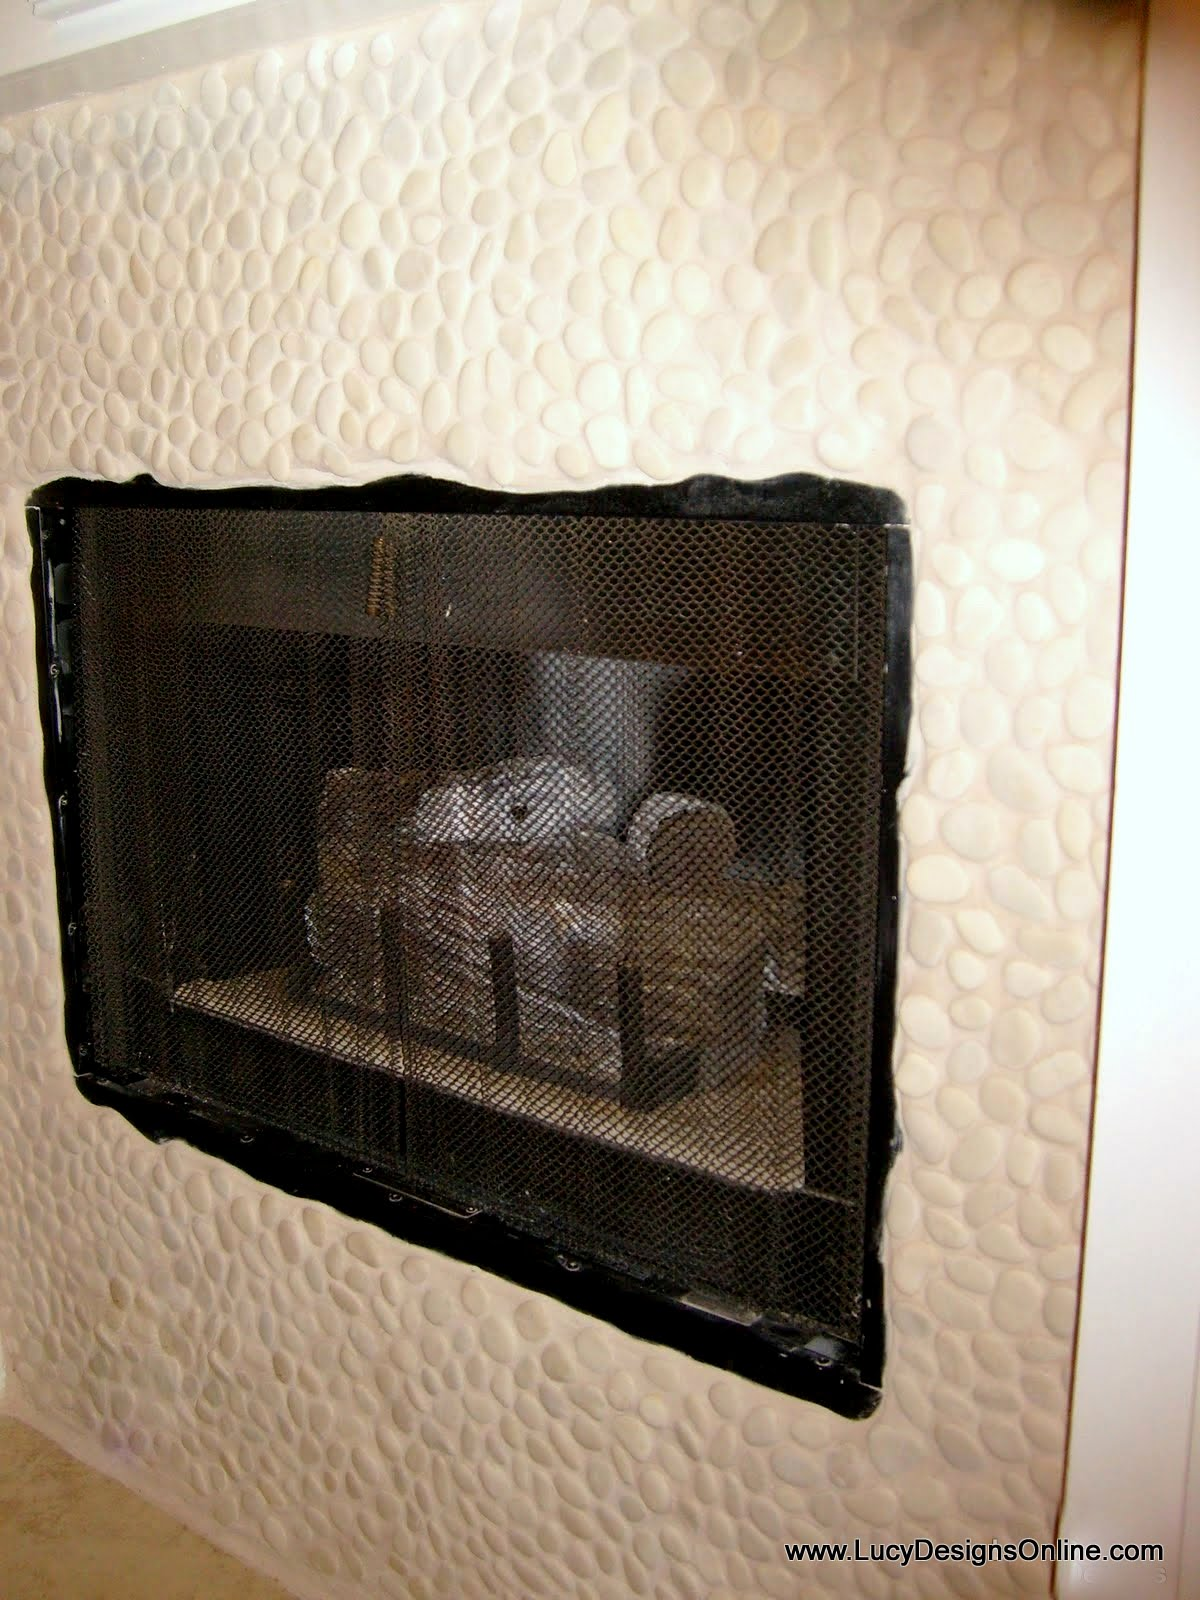 fireplace surround makeover using pebble mosaic tiles